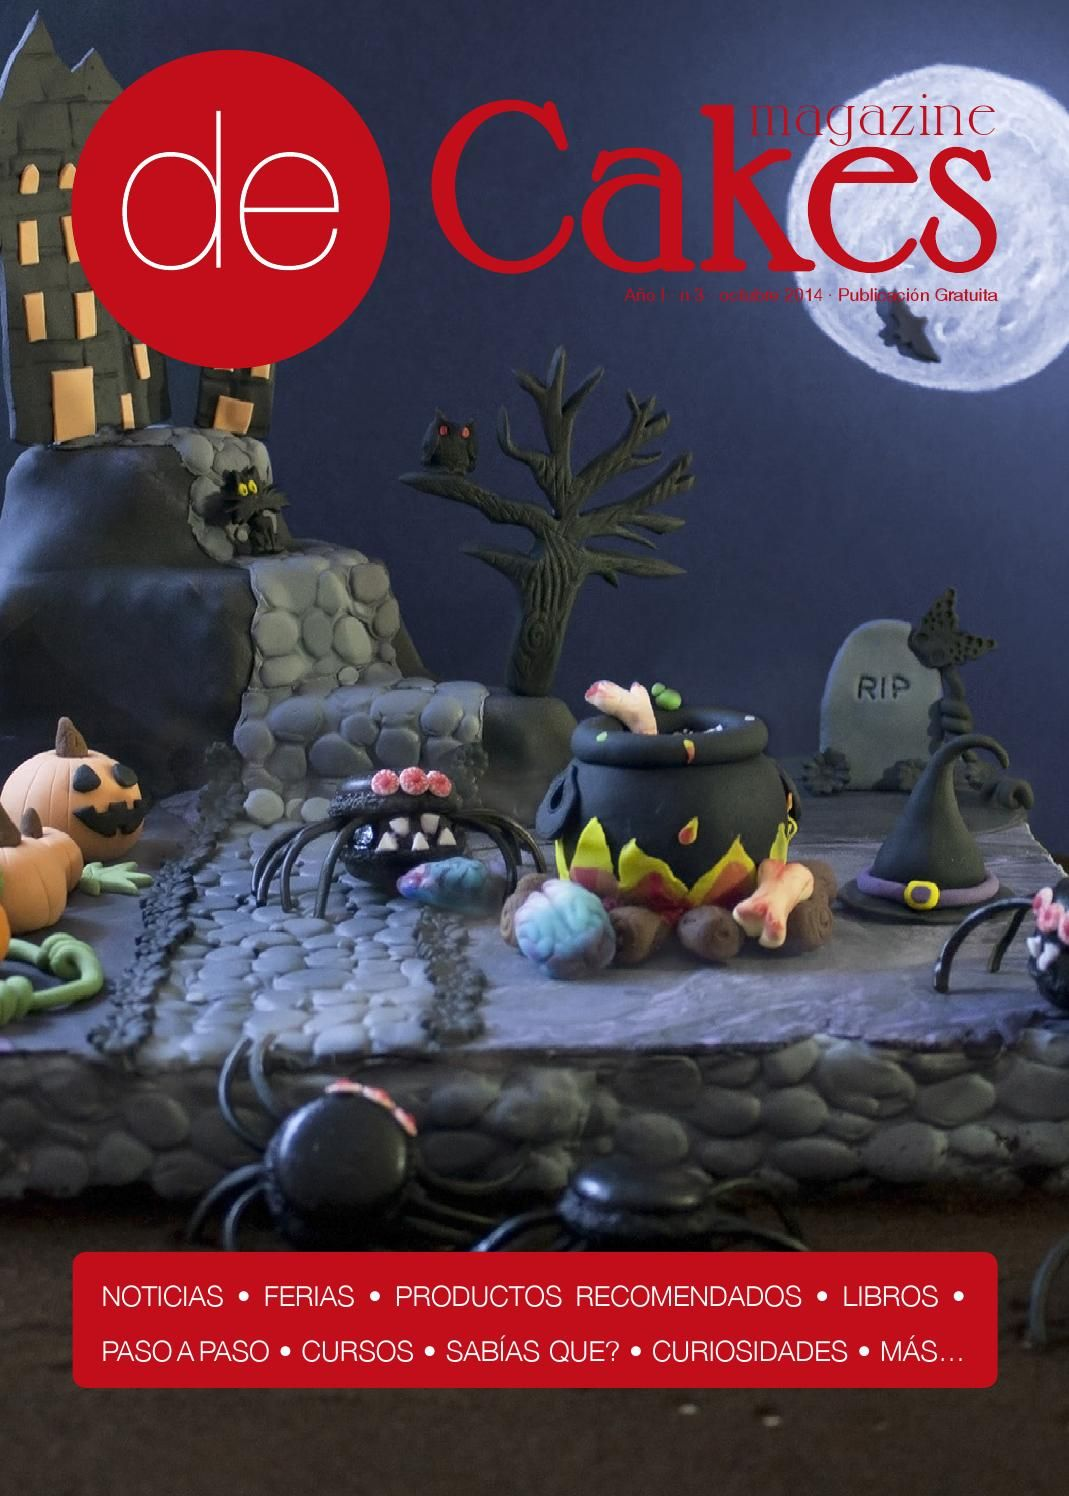 Libro De Reposteria De Cakes 03 Oct2014 Wonderful Books Magazines And